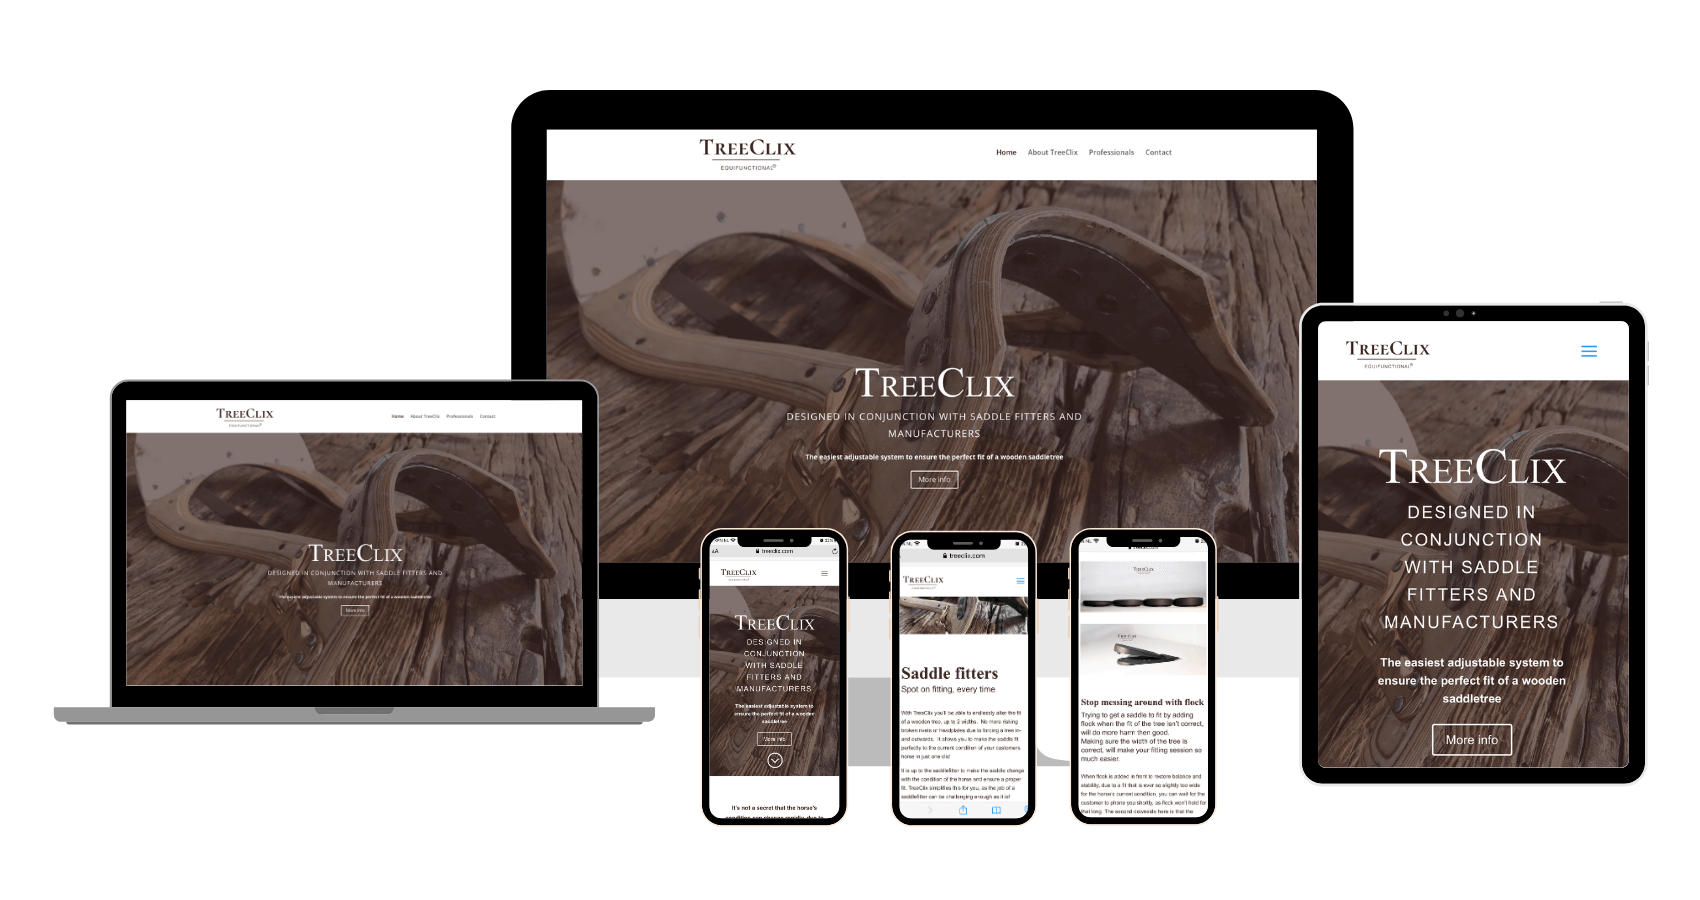 TreeClix - website